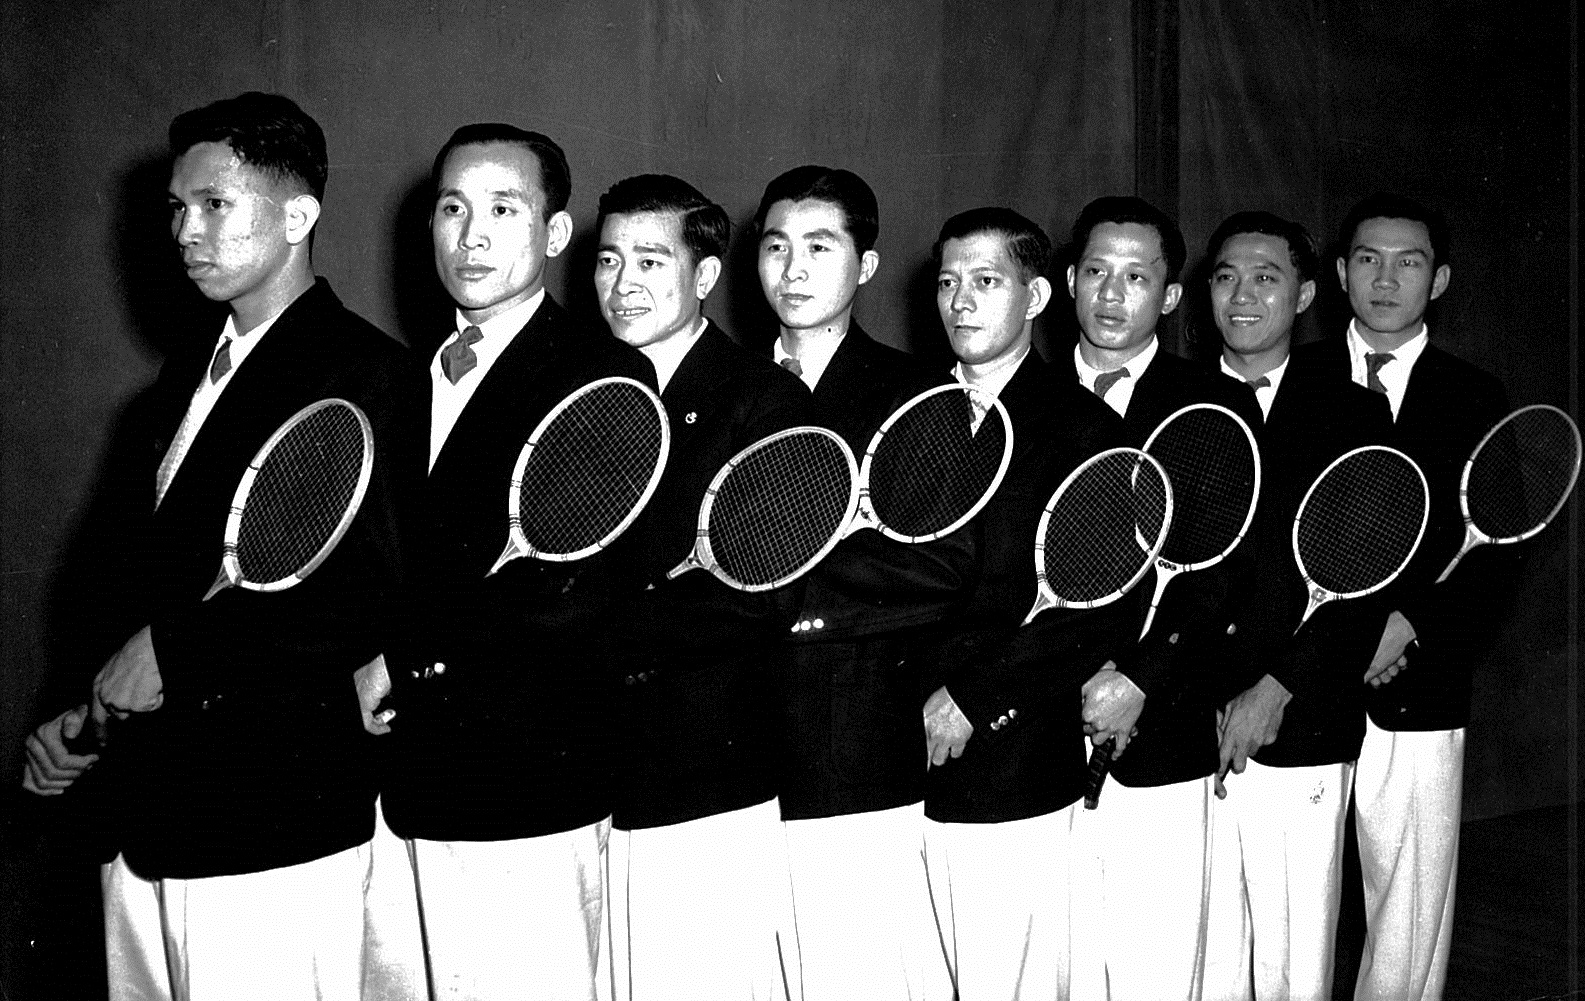 1948-49 thomas cup winners malaya pose with rackets -  ong poh lim 2nd from left - ap picture